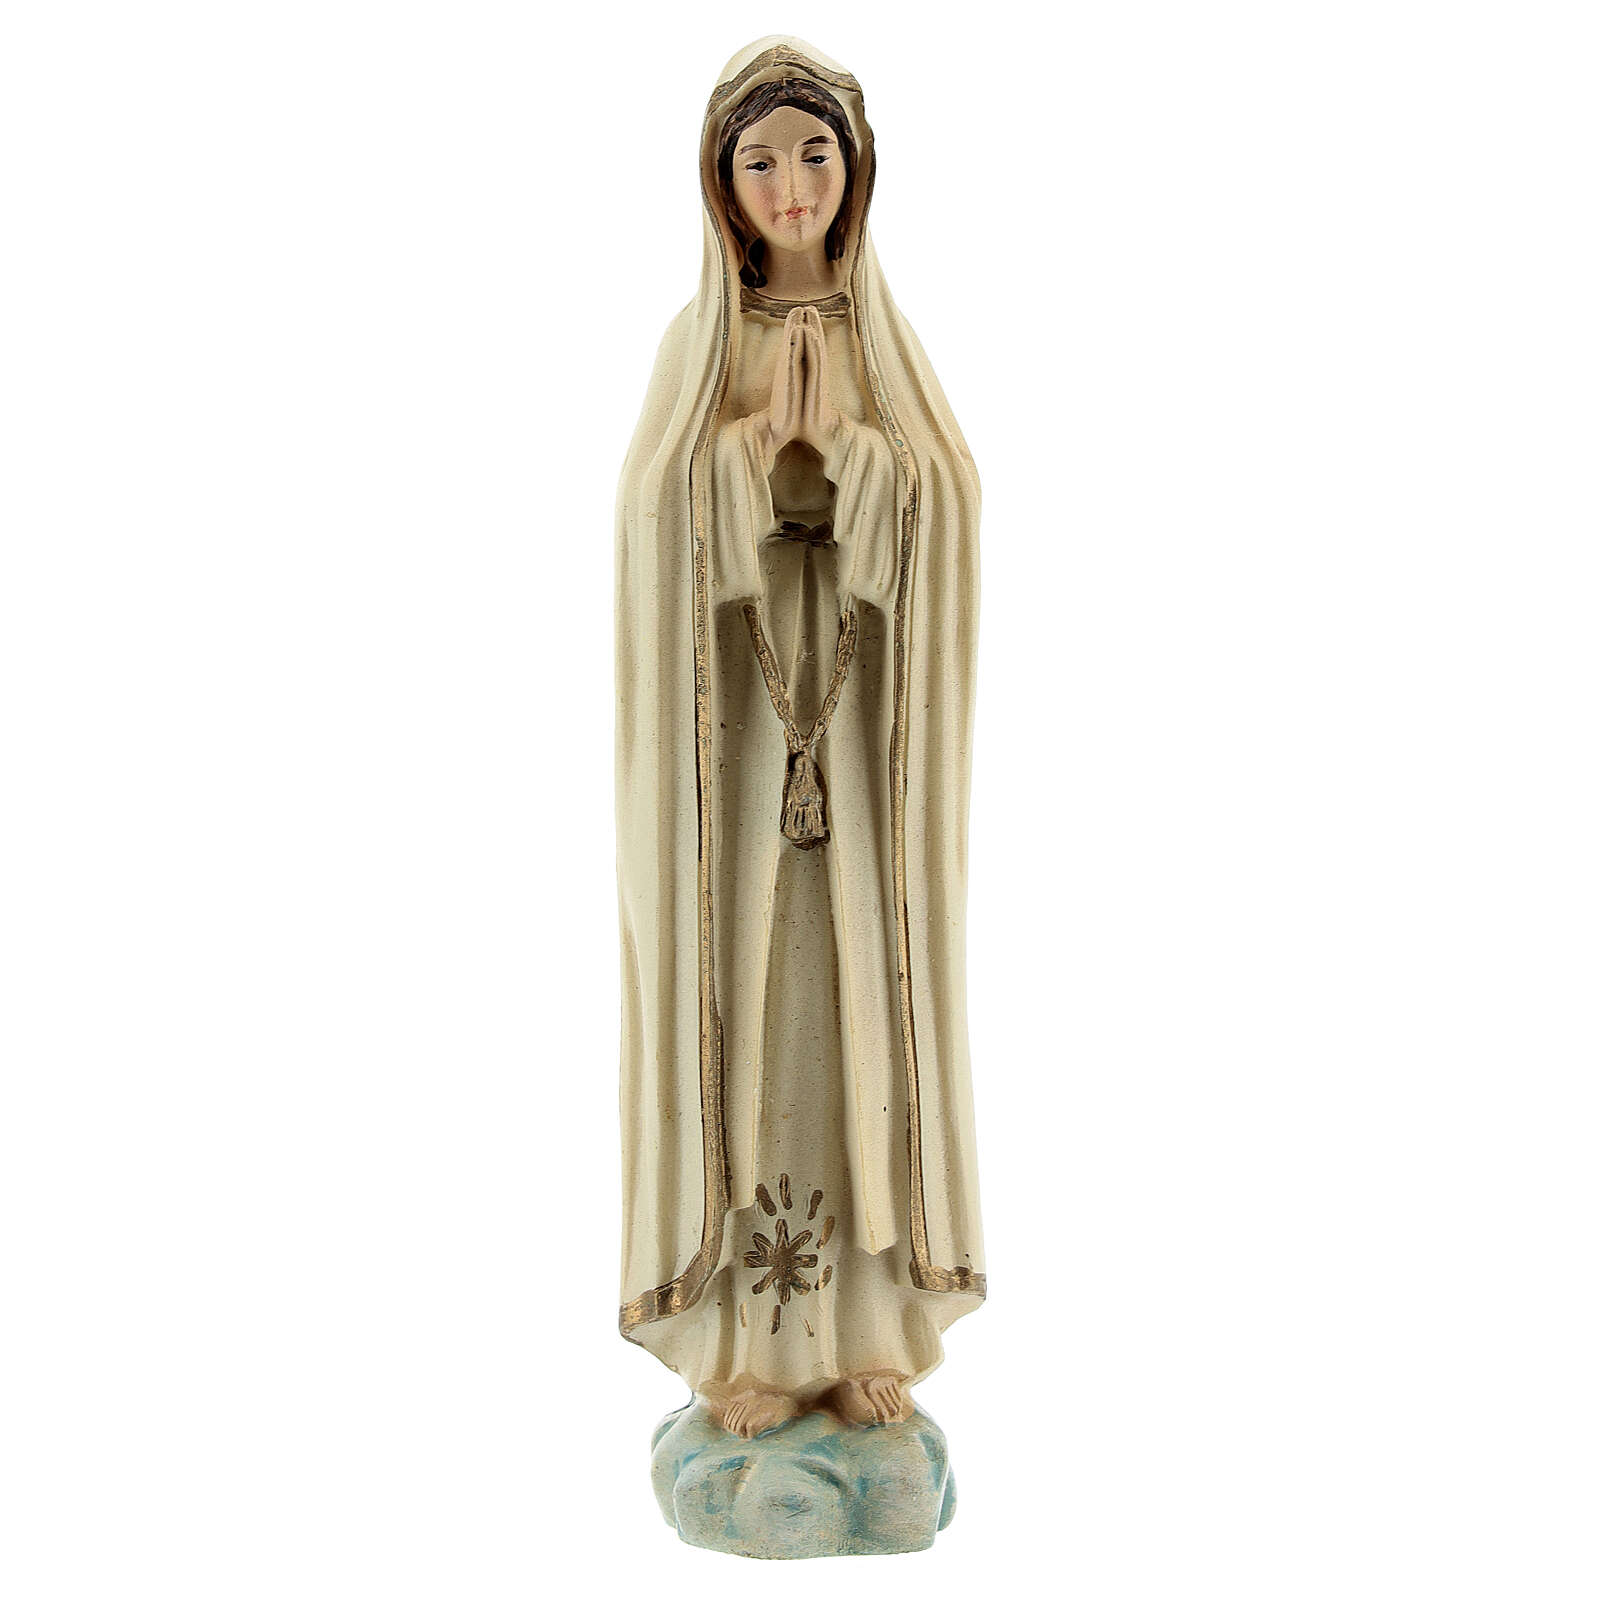 Our Lady of Fatima prayer gold star resin statue 12 cm 4